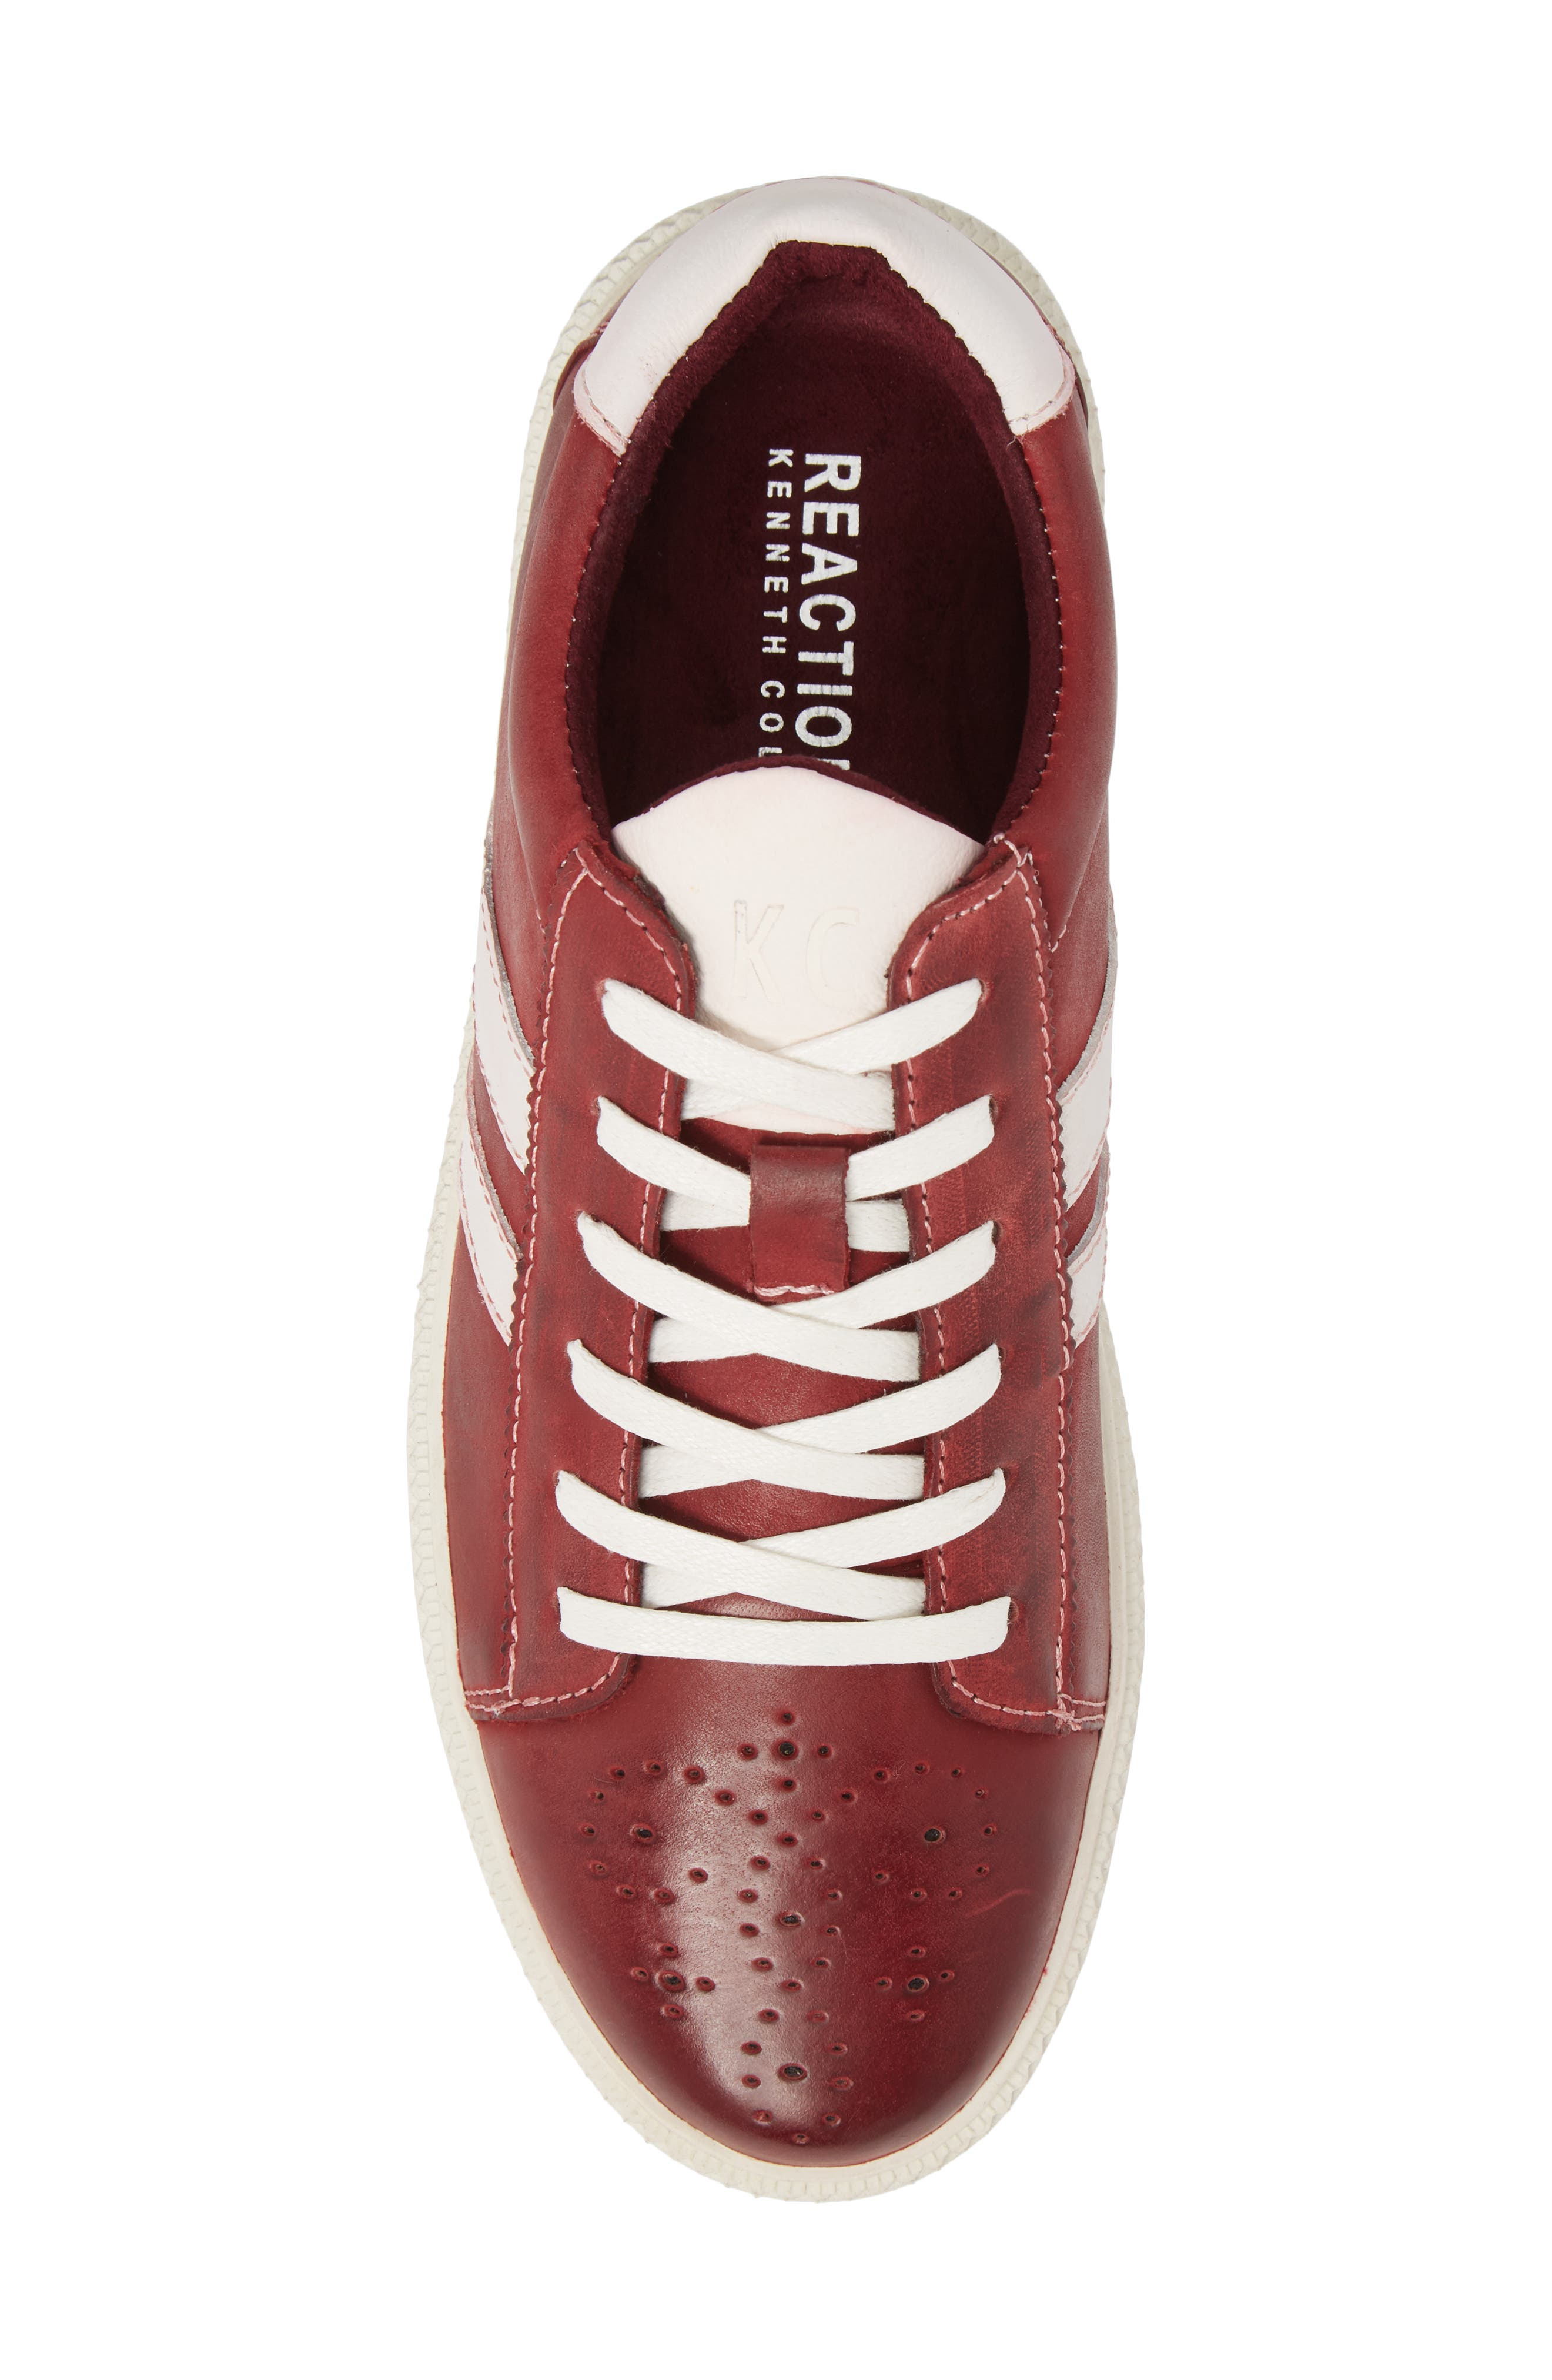 Madox Low Top Sneaker,                             Alternate thumbnail 5, color,                             Red